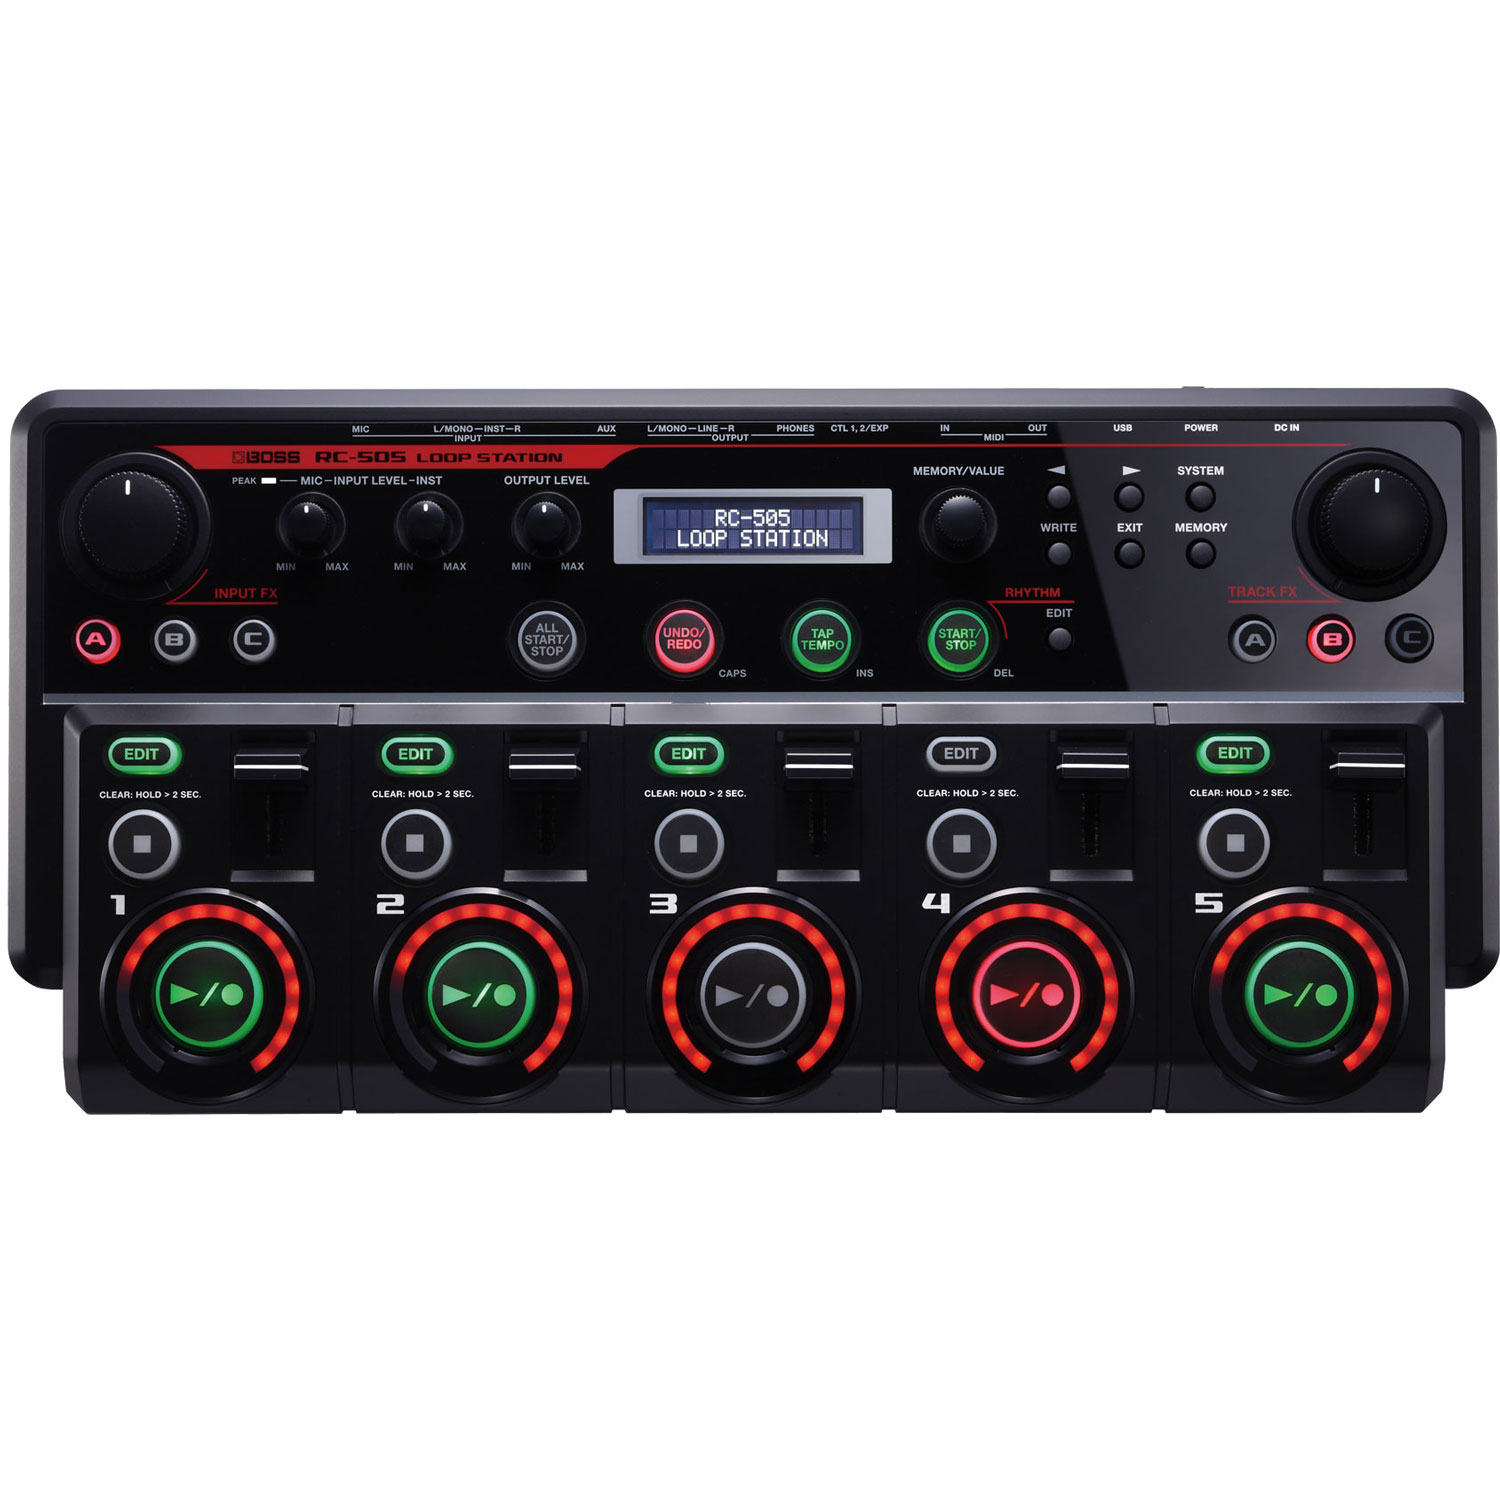 Boss RC-505 Guitar Effects 5 Stereo Phrase Tracks Tabletop Loop Station, Black